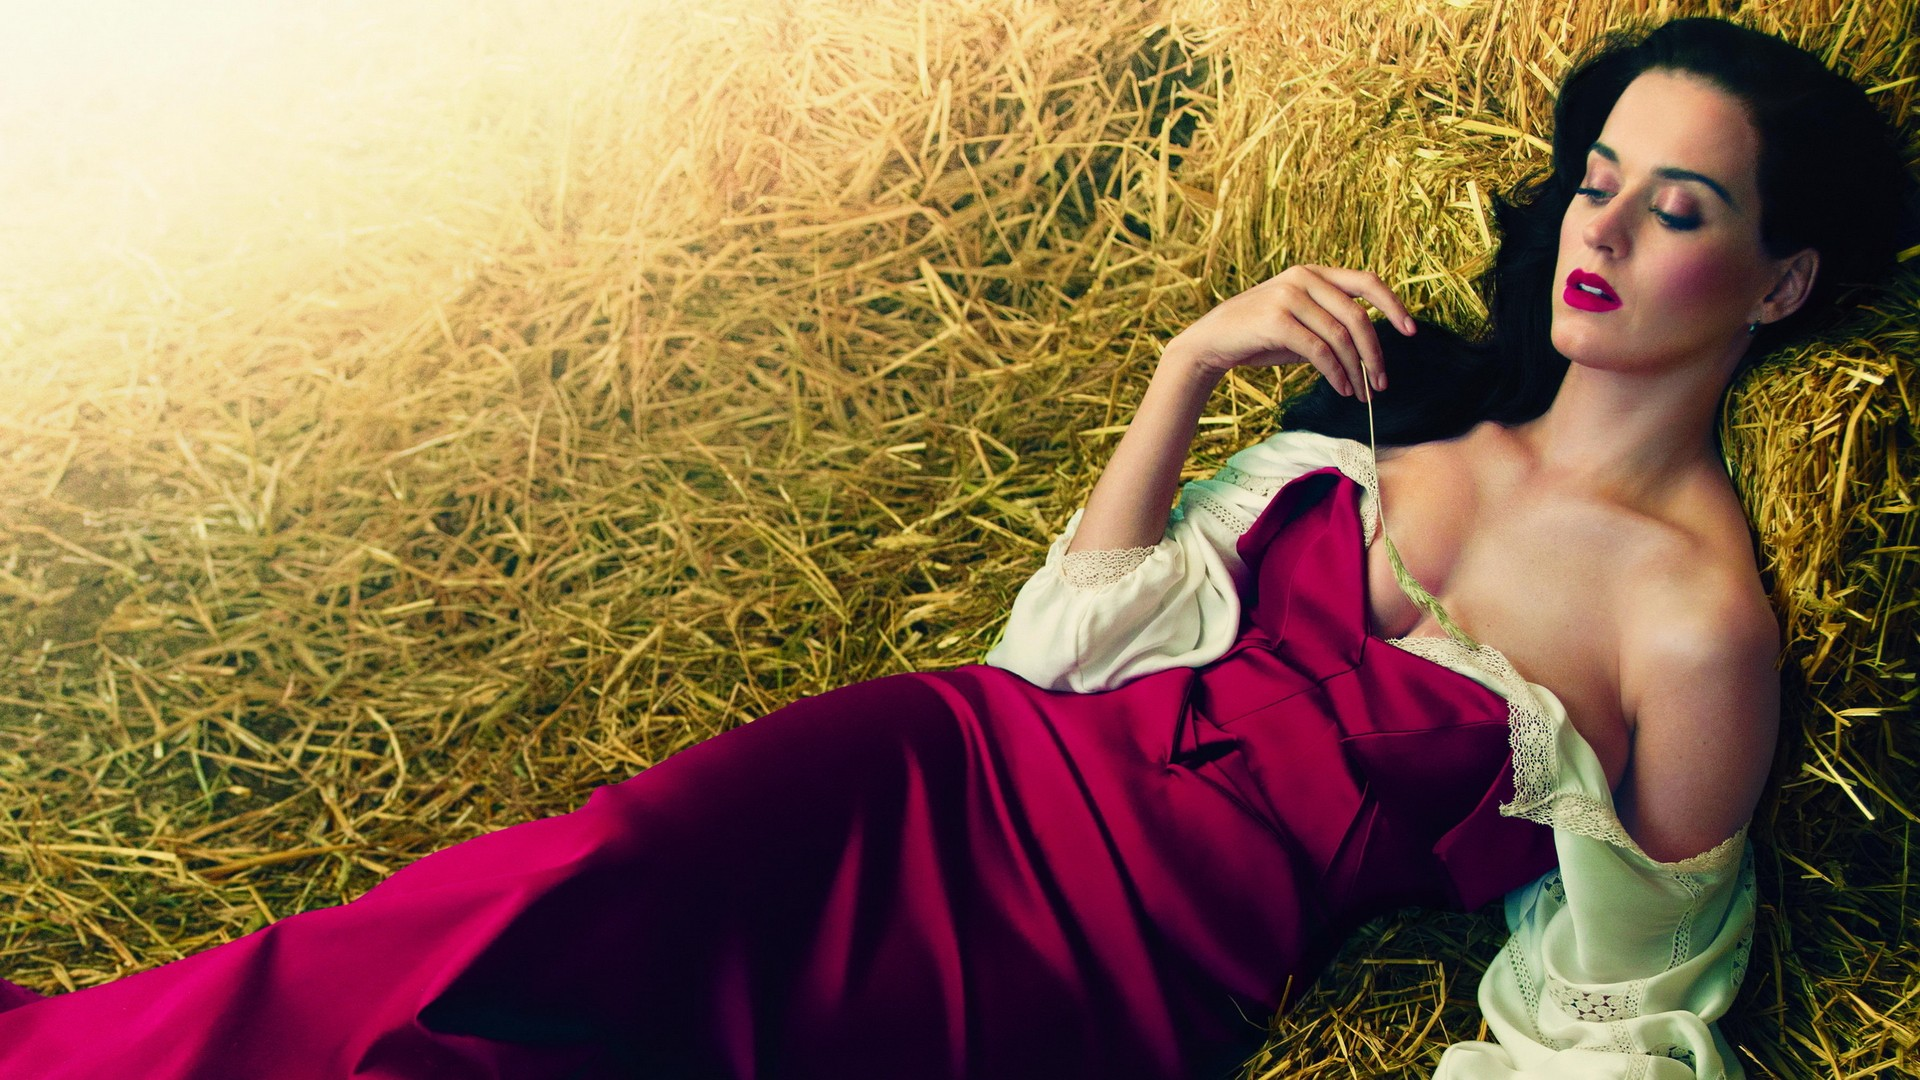 Katy Perry Wallpapers, Pictures, Images